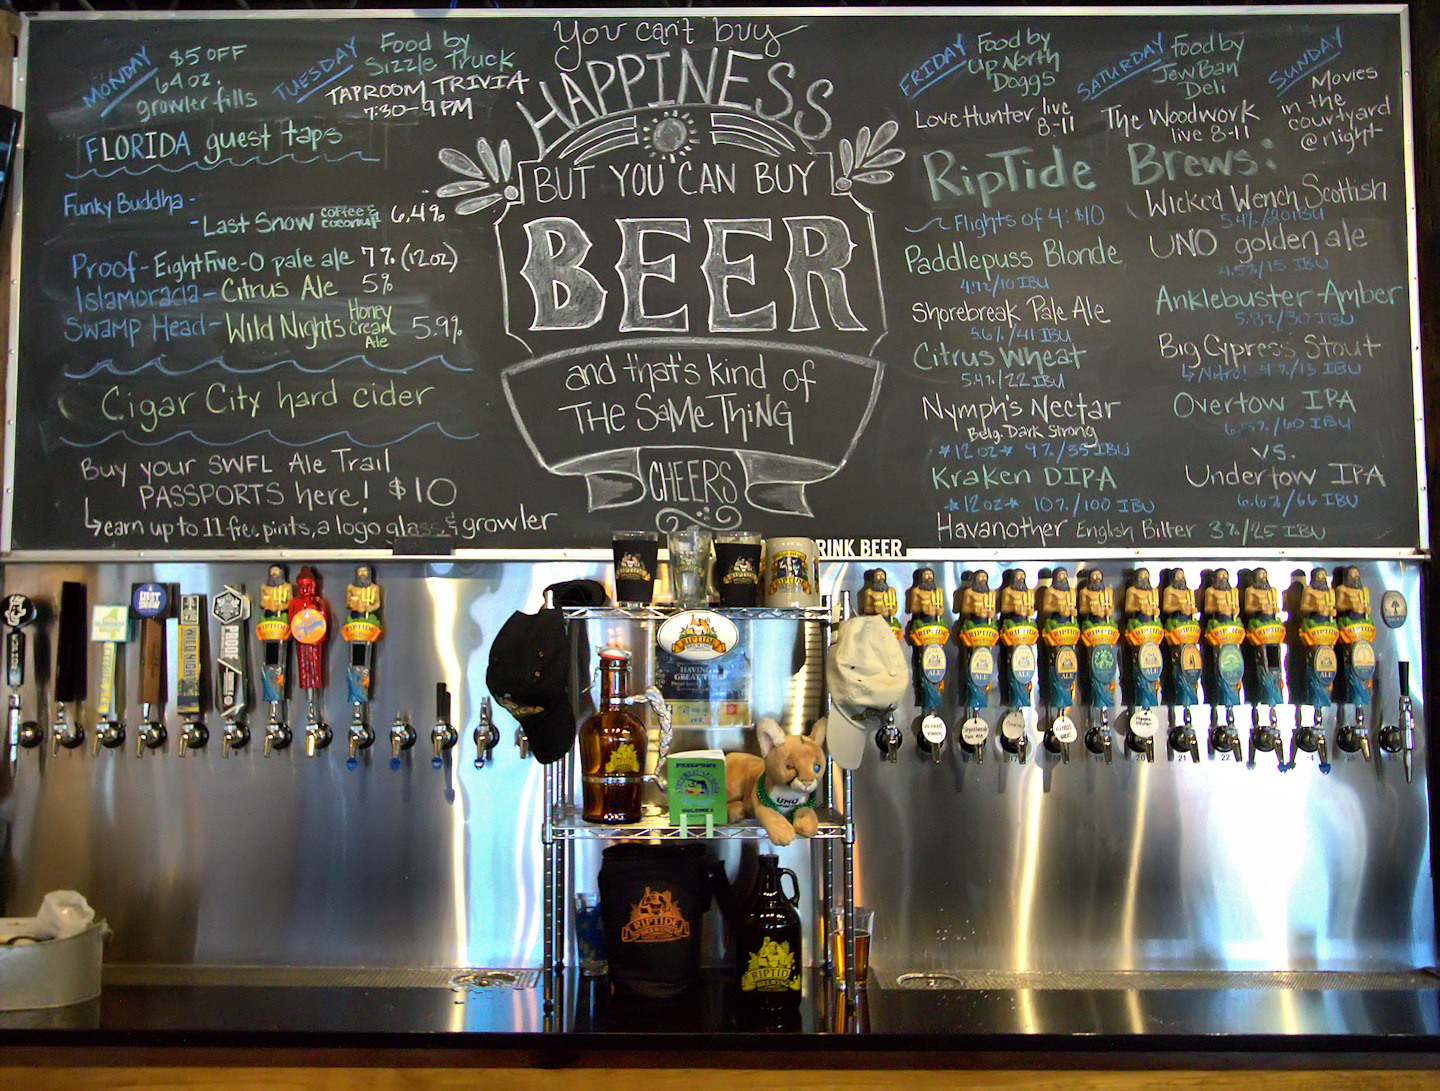 Riptide Brewing: Beer selections